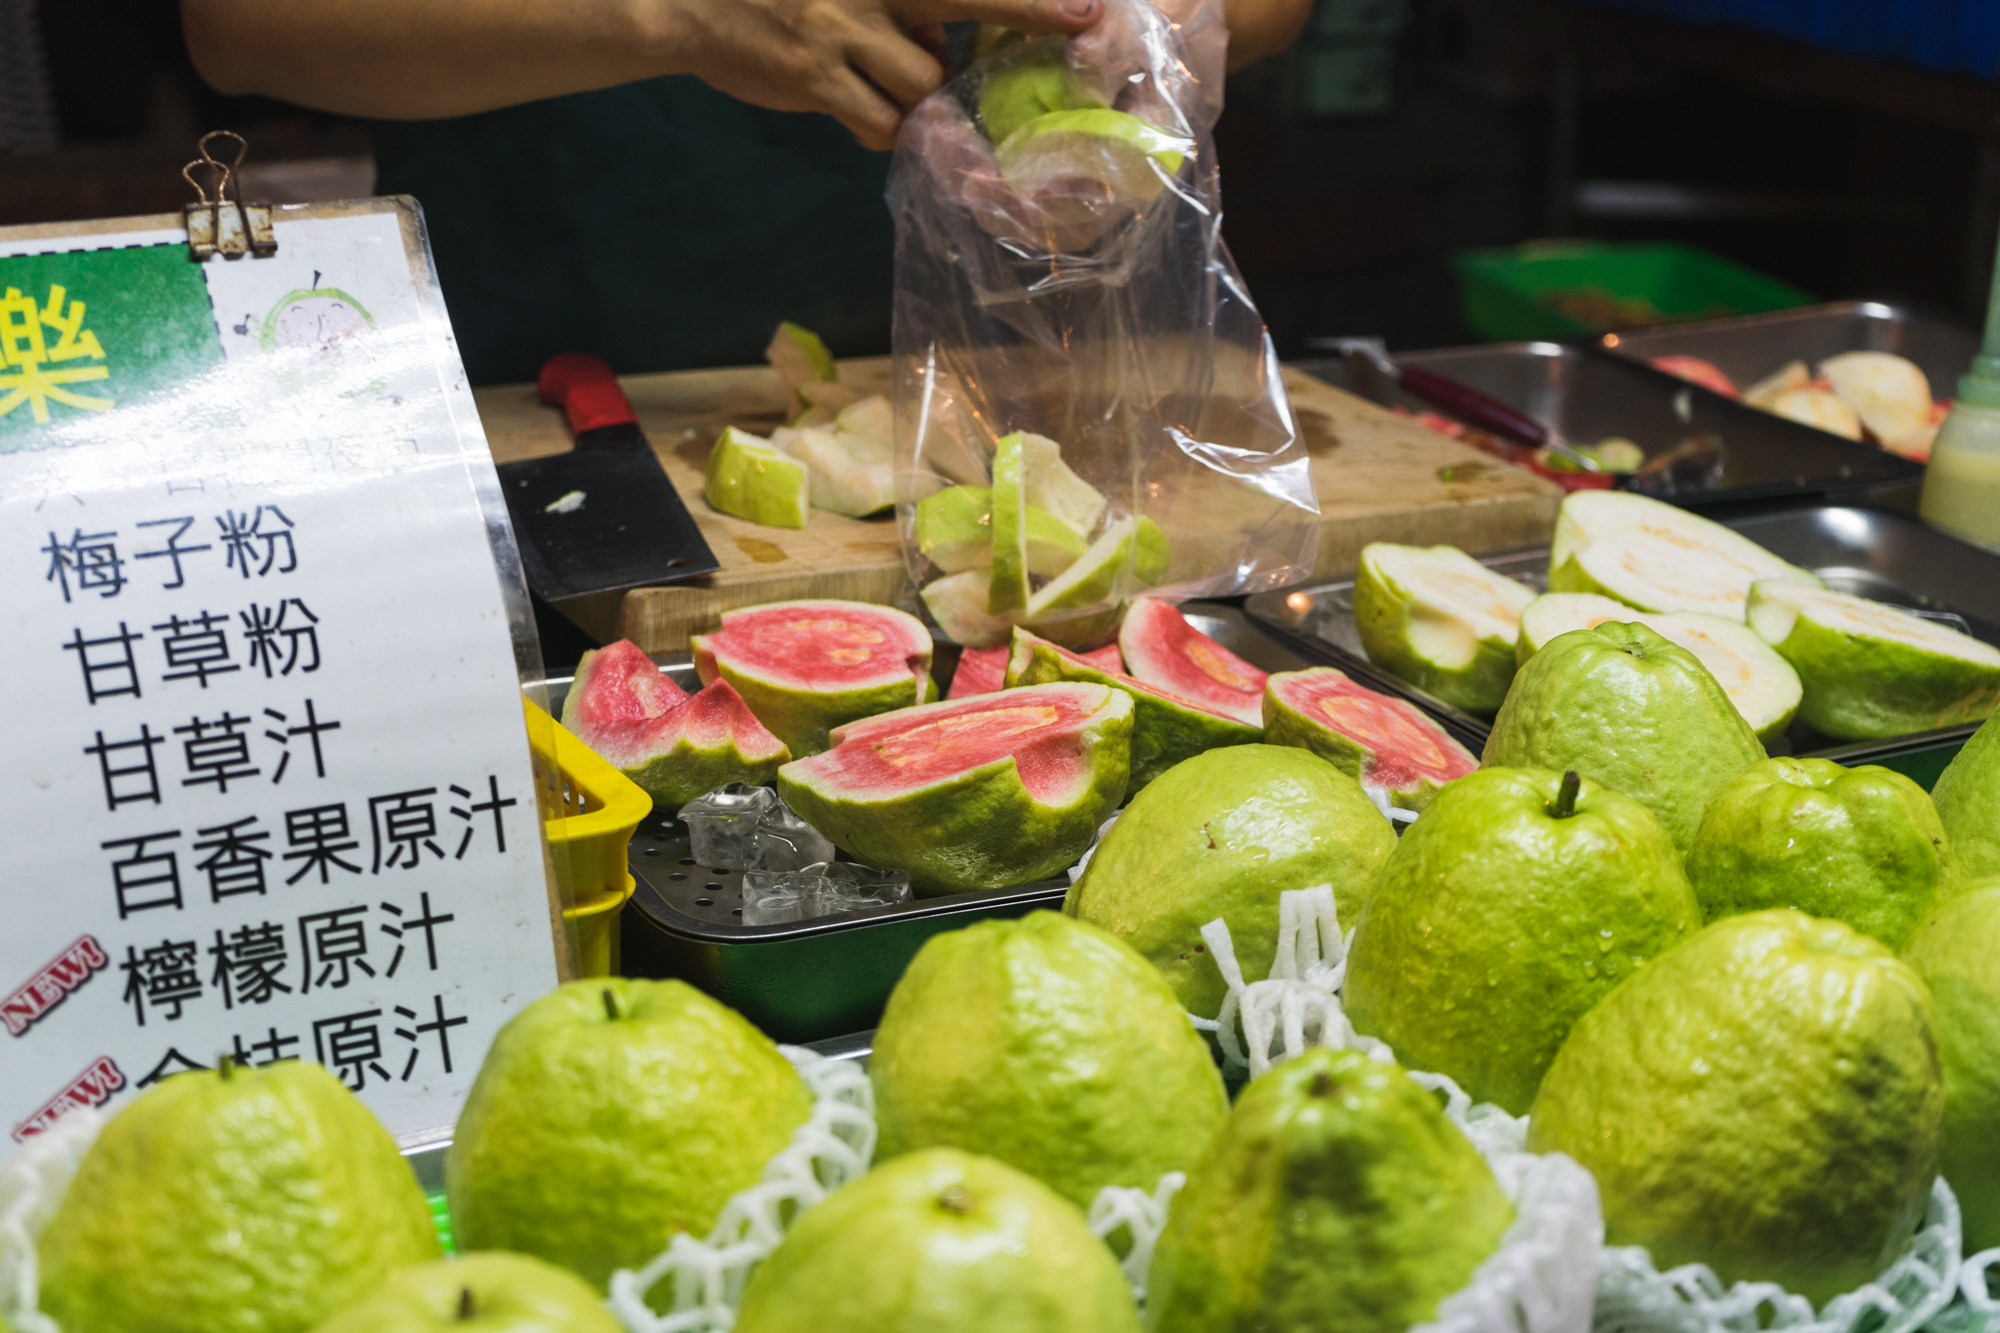 Guava at the Huayuan Night Market in Tainan